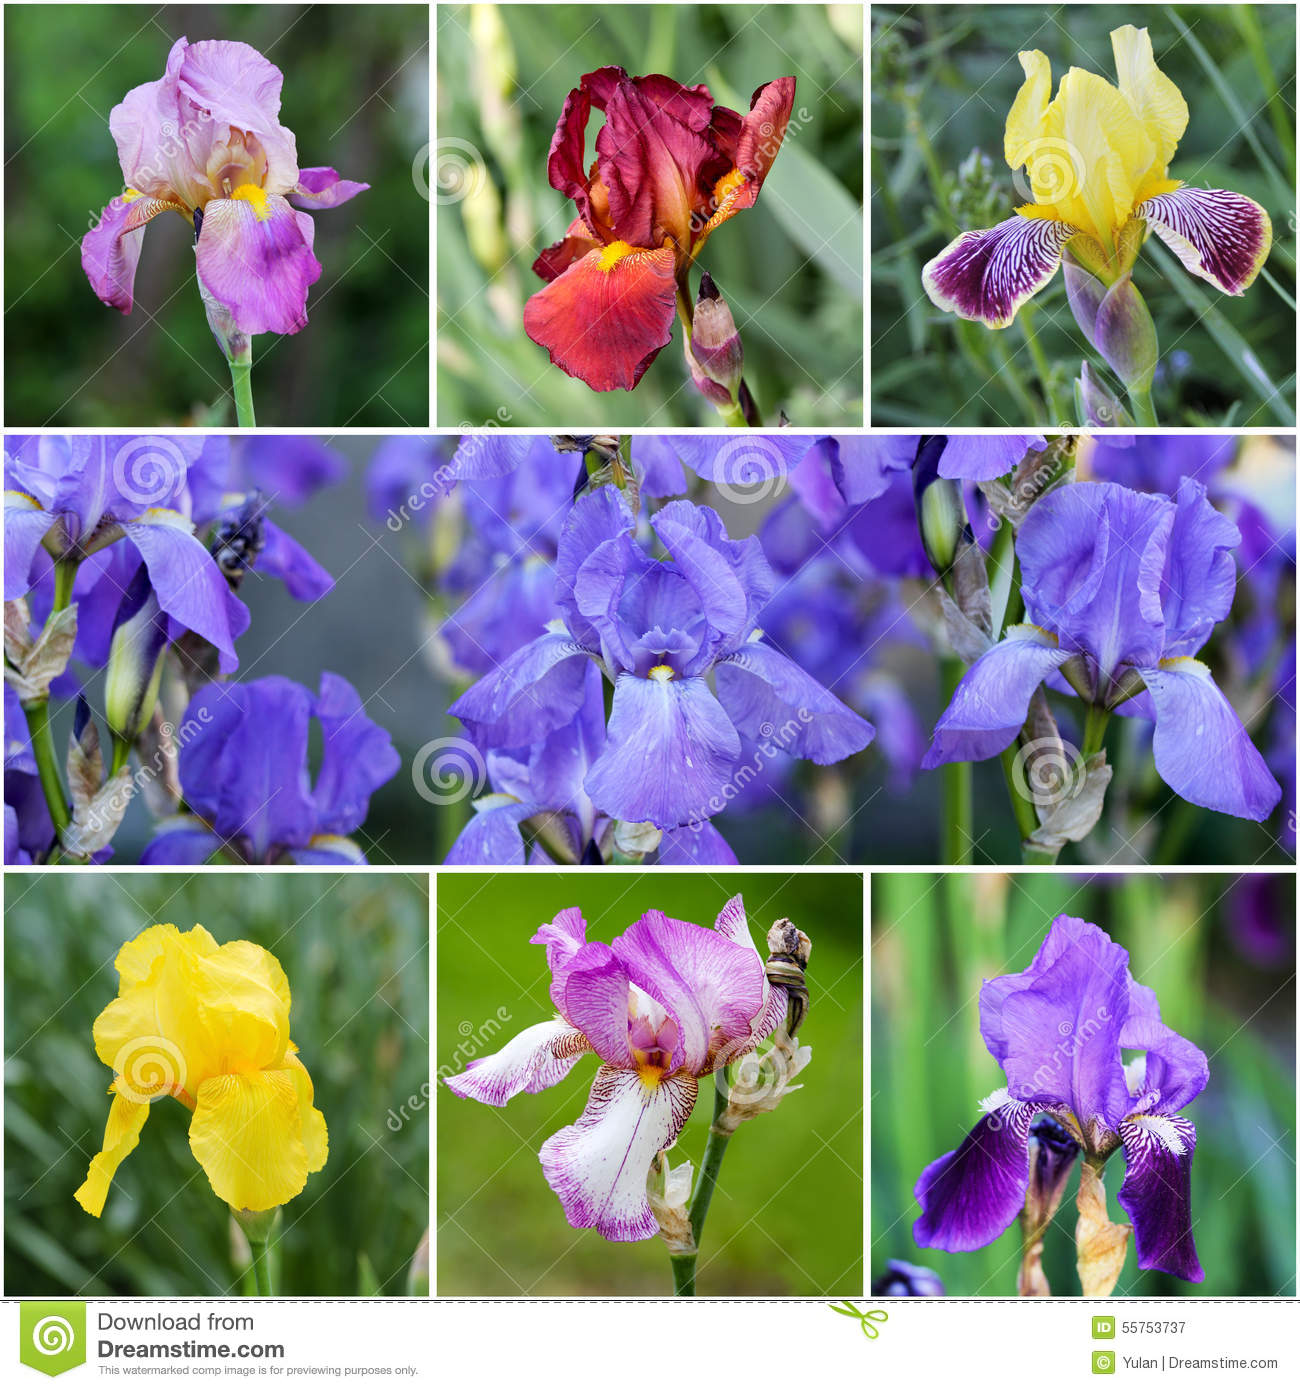 iris flowers stock photo  image, Natural flower